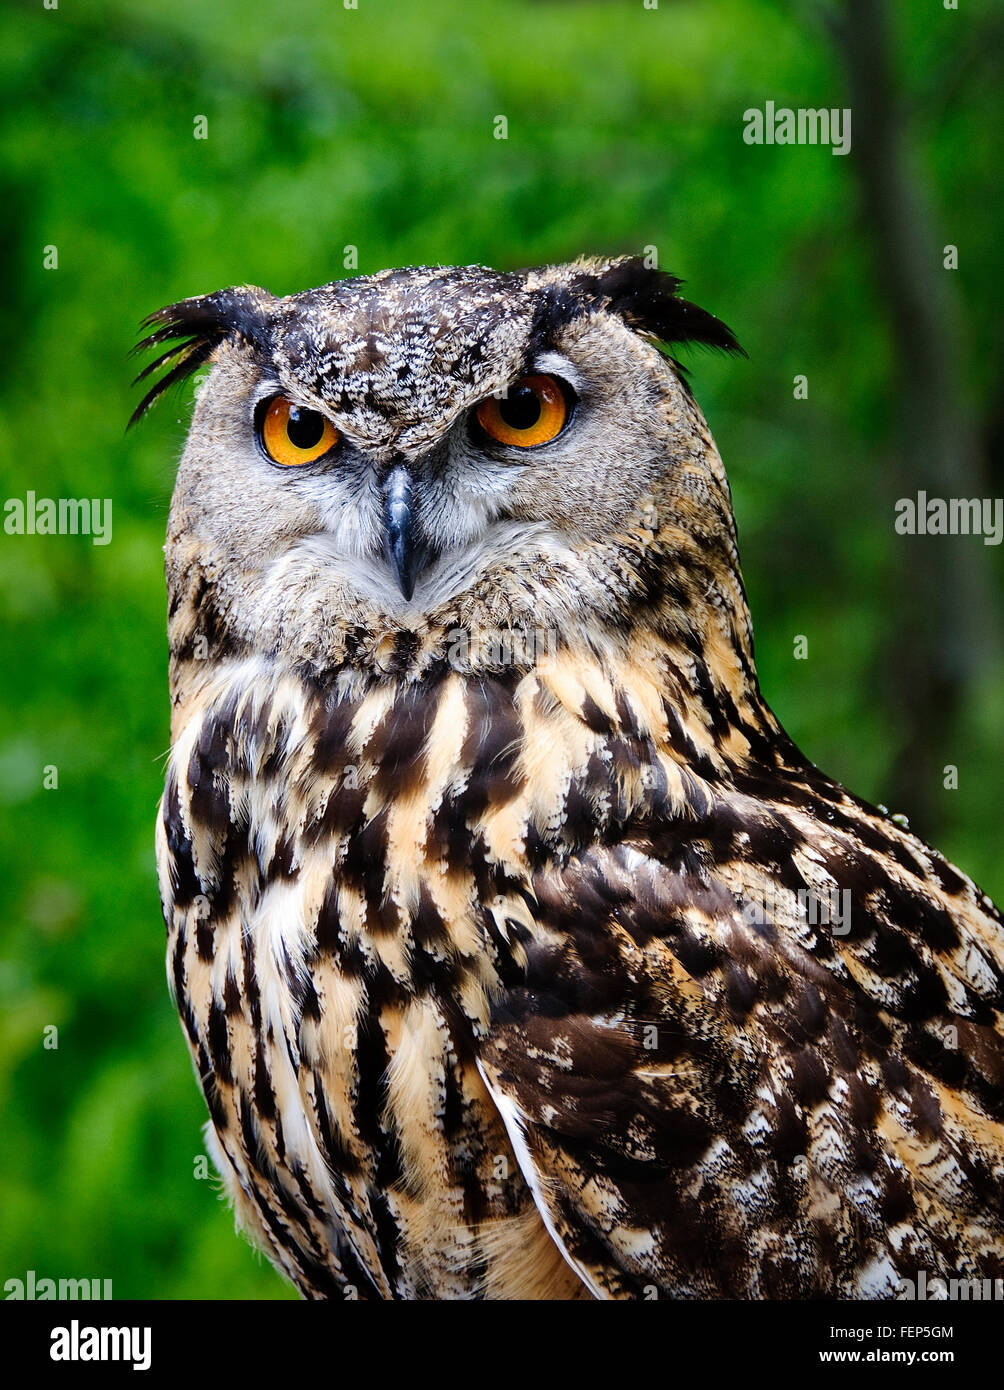 Frontal view of Great Horned owl.  Taken while in captivity - Stock Image